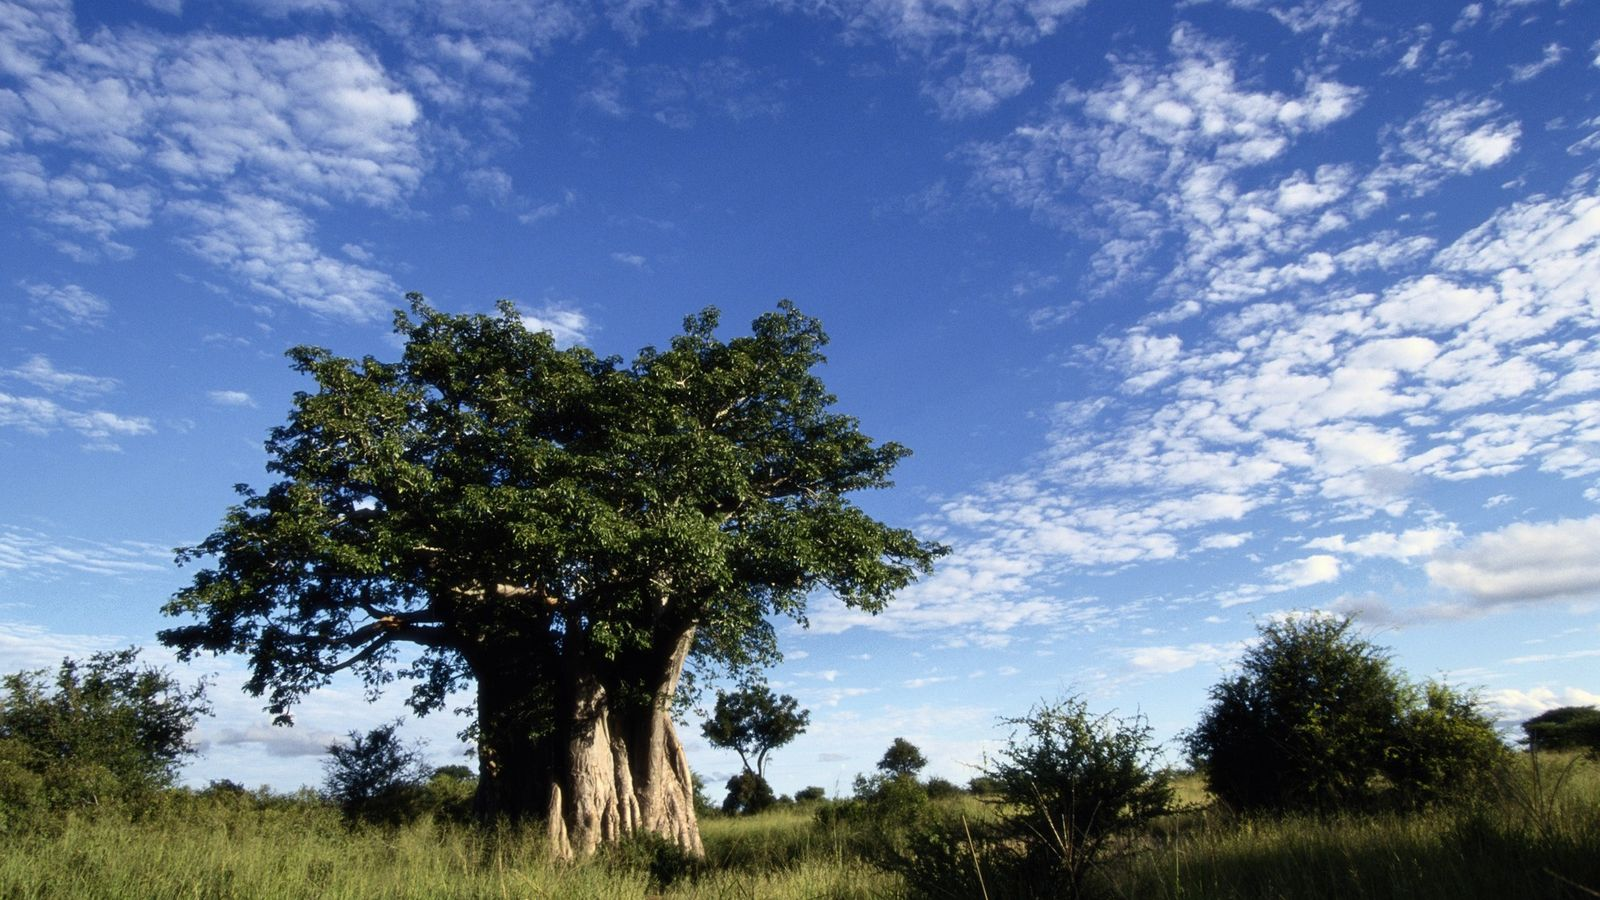 A towering baobab tree dominates the landscape on the savanna of Kruger National Park in South ...